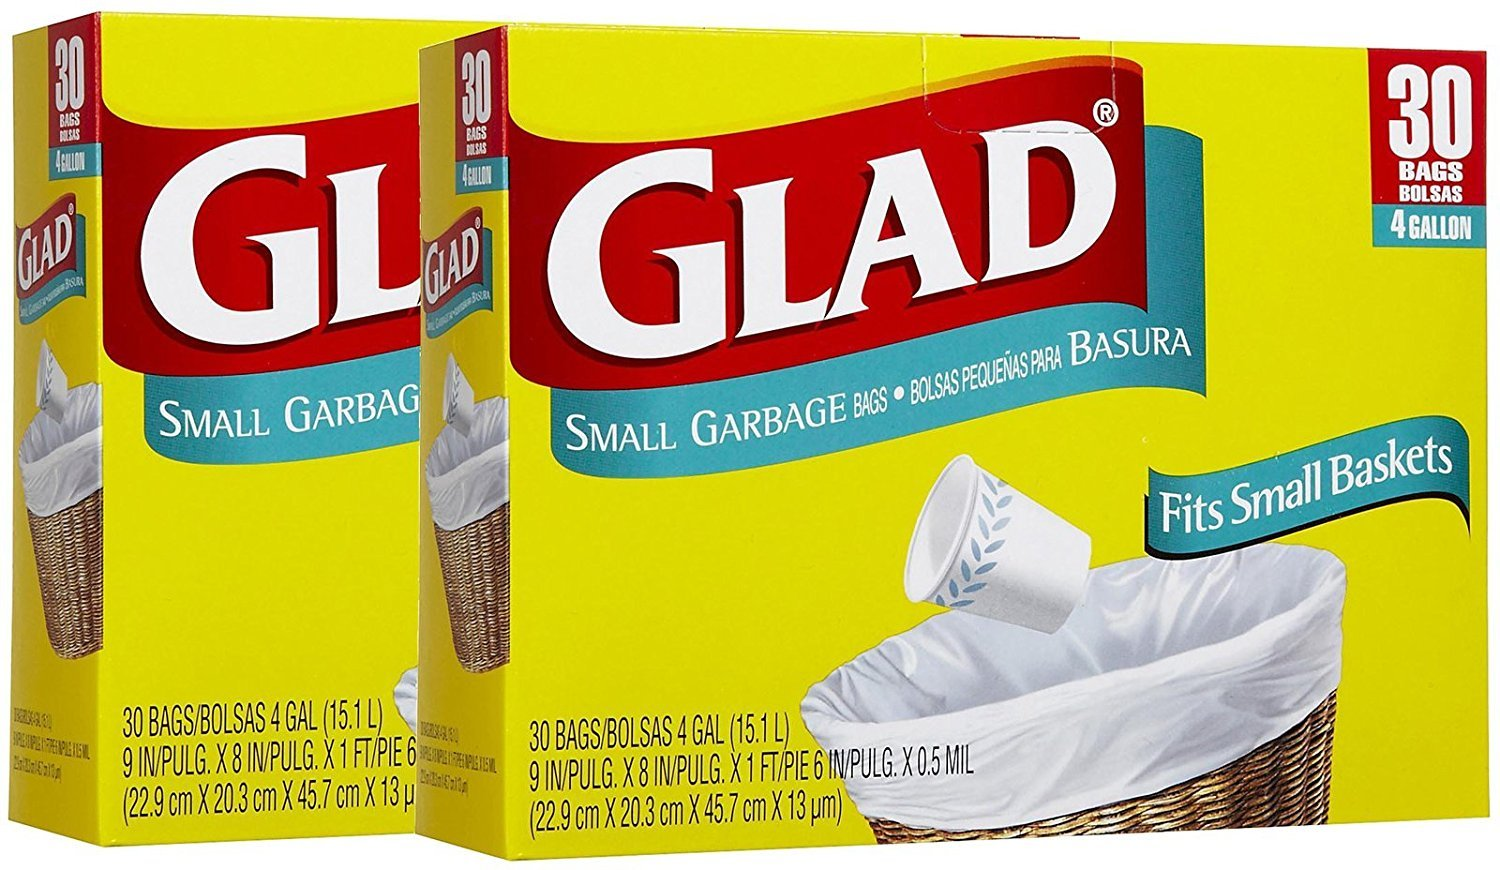 4 gallons 30 ct Glad Garbage Small 2pk 10012587001506B2 White